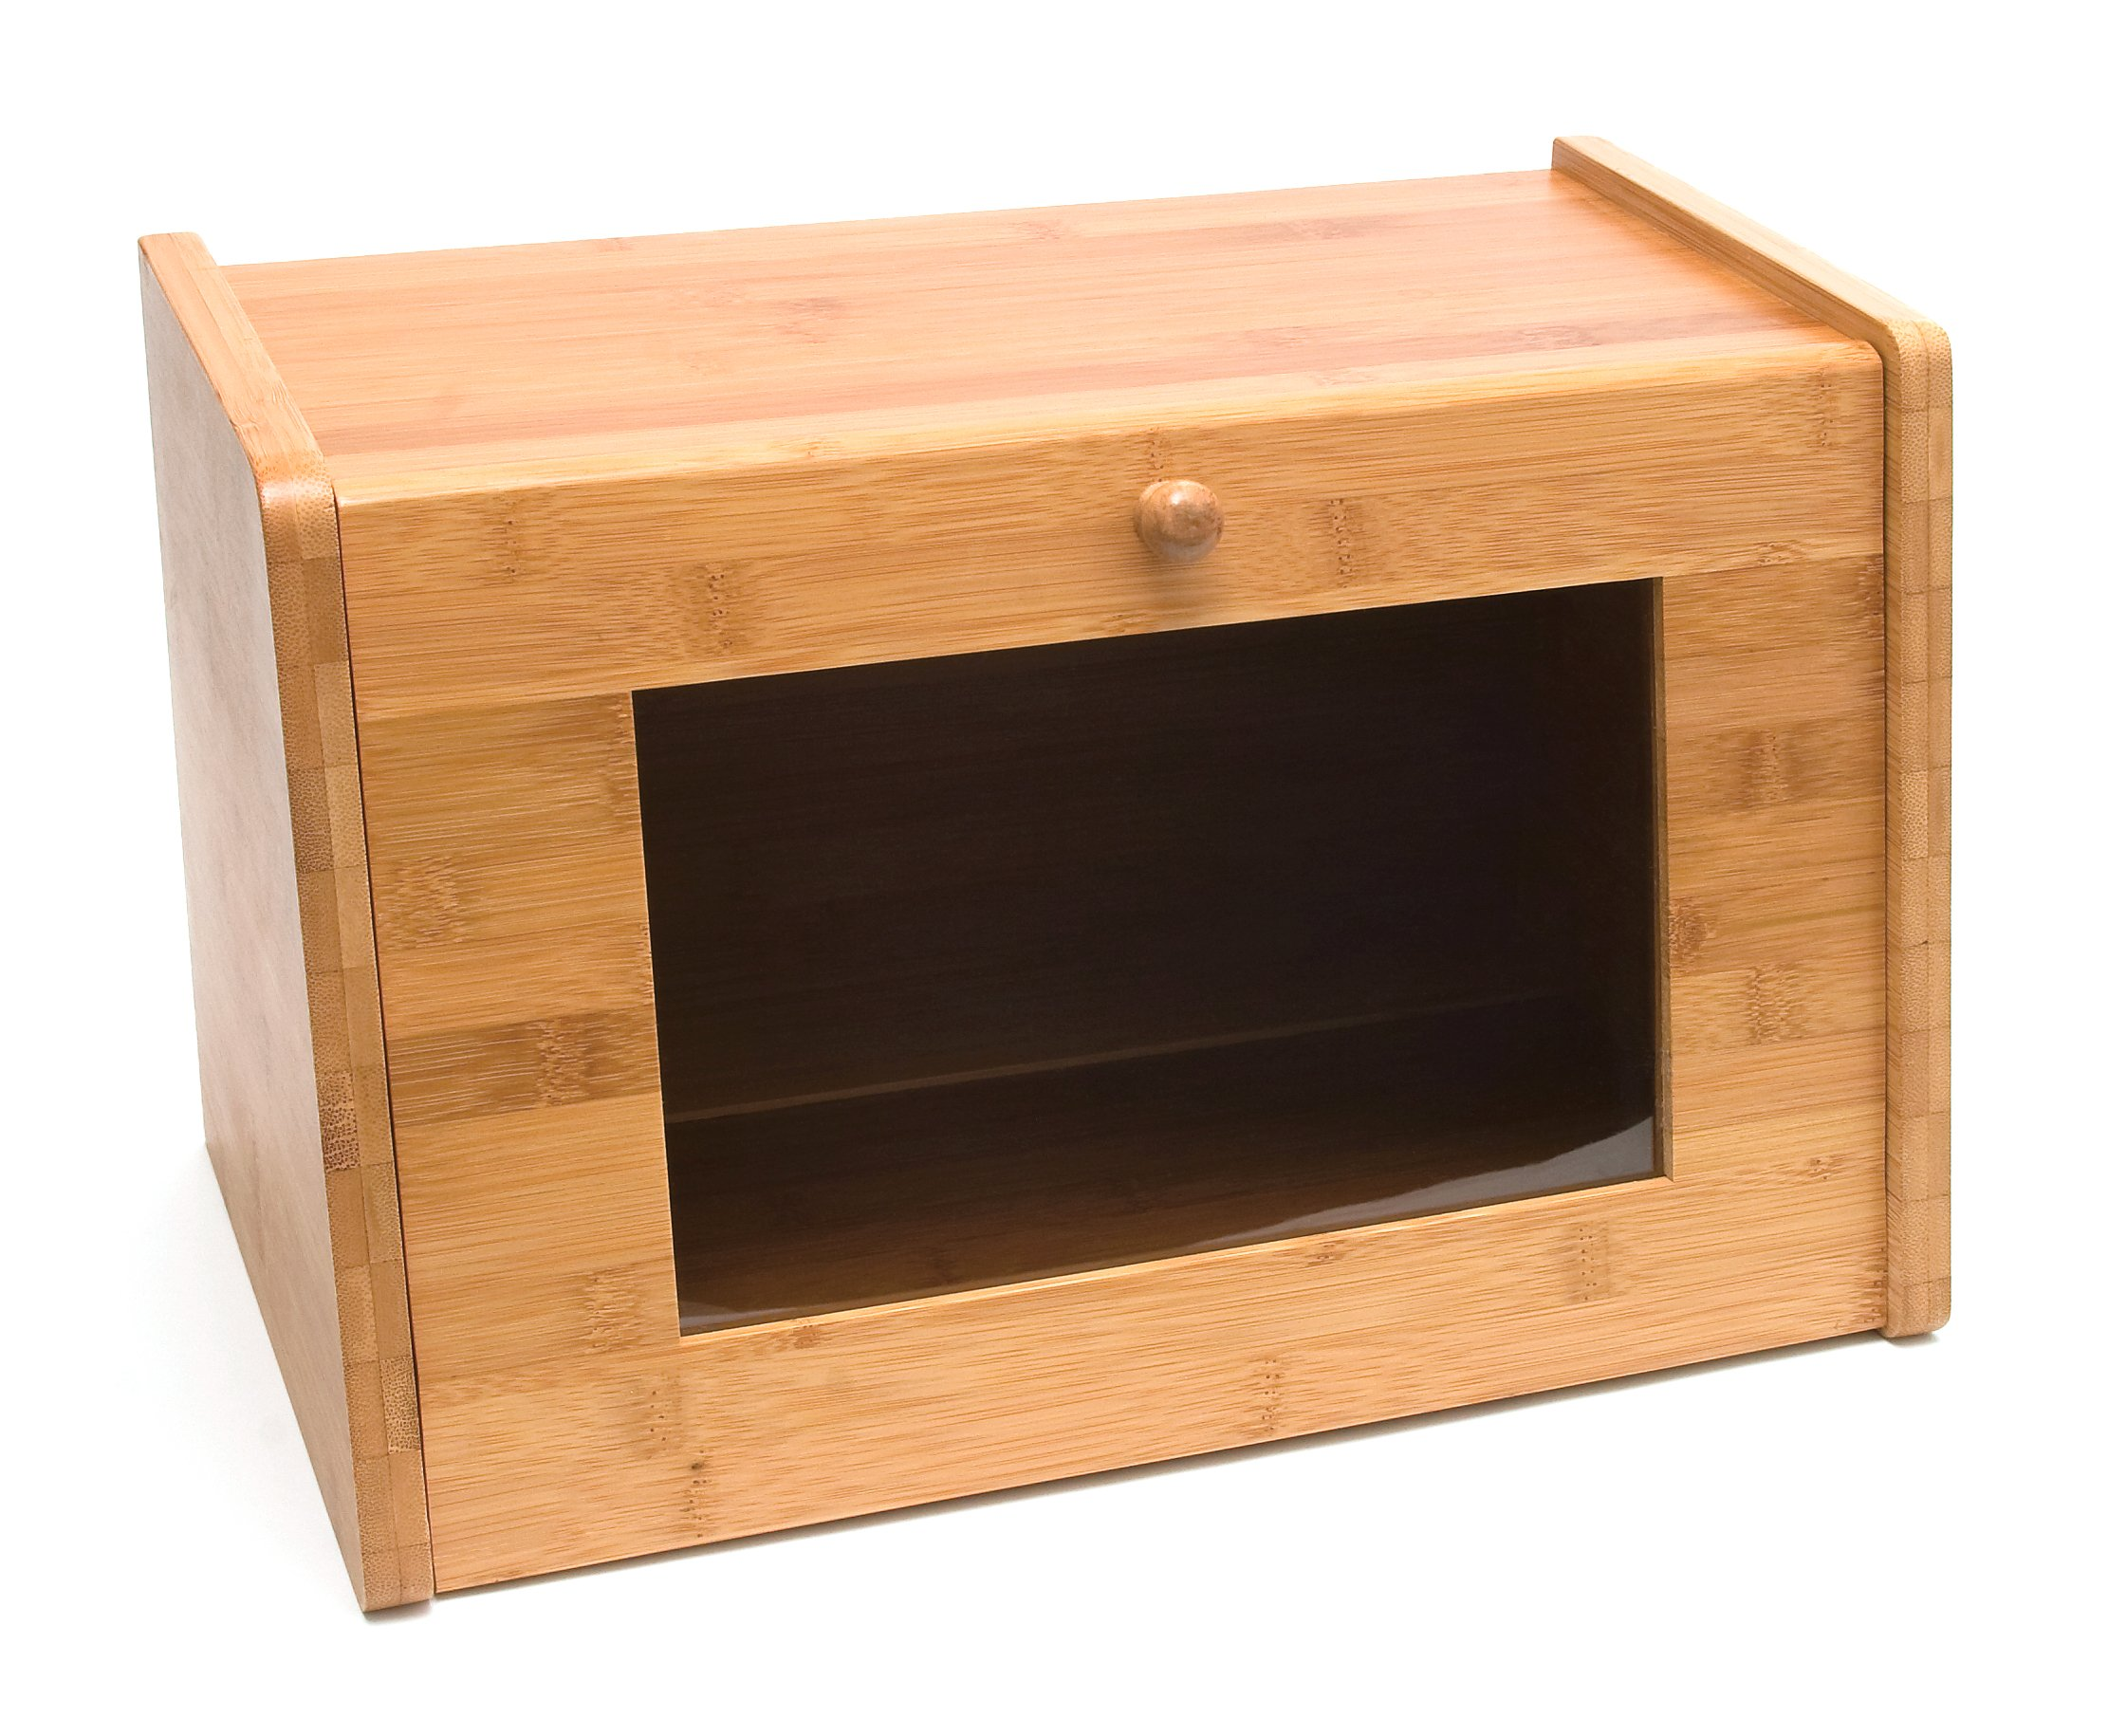 Lipper International 8847 Bamboo Wood Bread Box with Tempered Glass Window, 15-1/2'' x 9-1/2'' x 9-3/4''